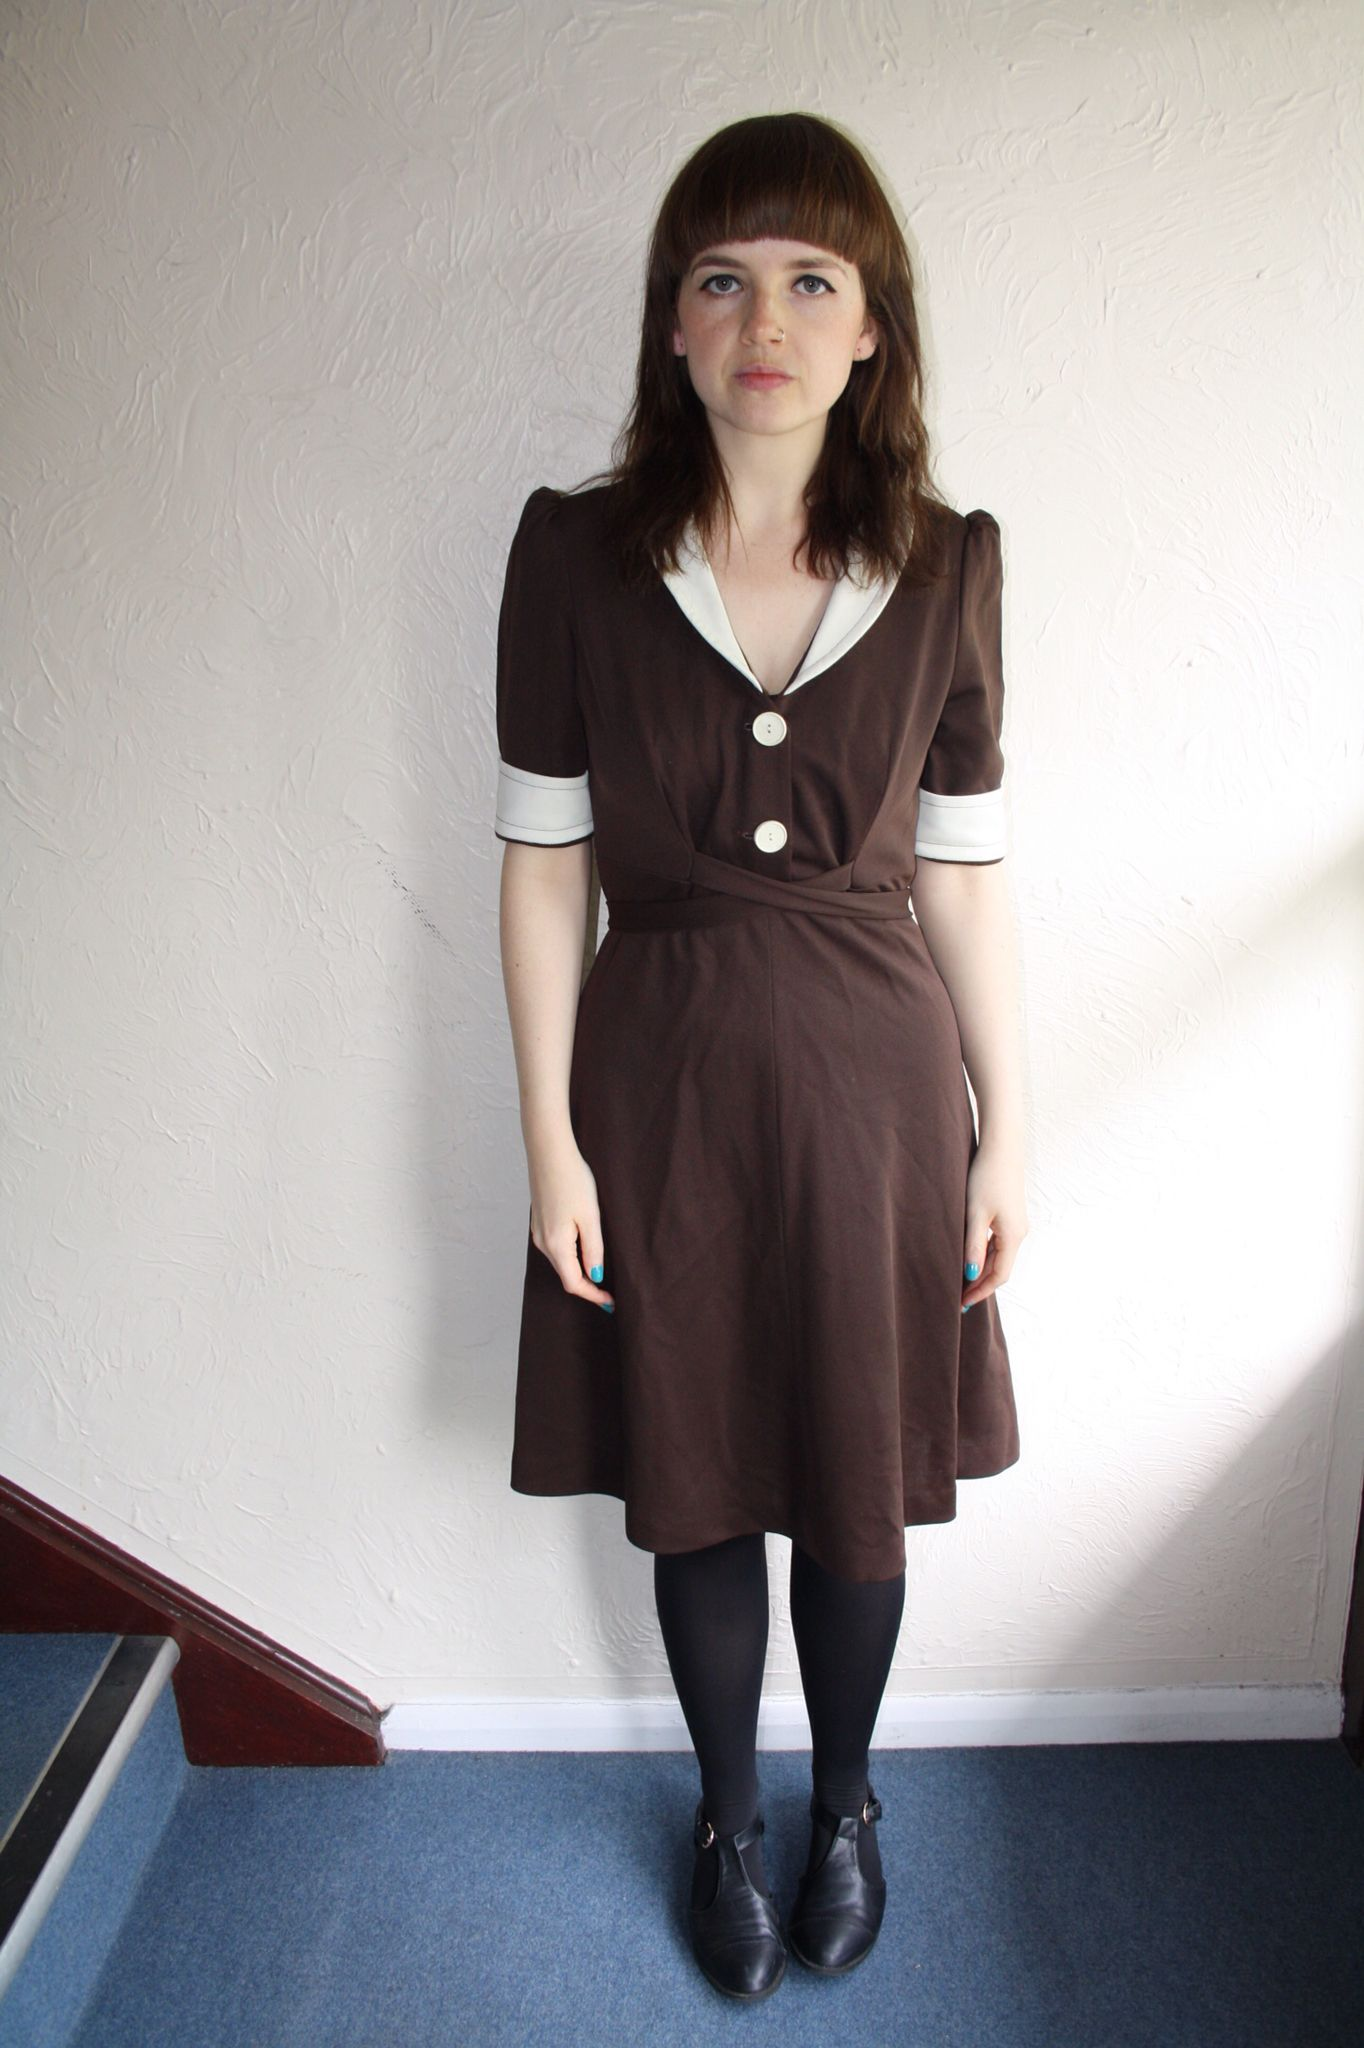 70s Brown & Cream Dress www.fromluluwithlovevintage.com